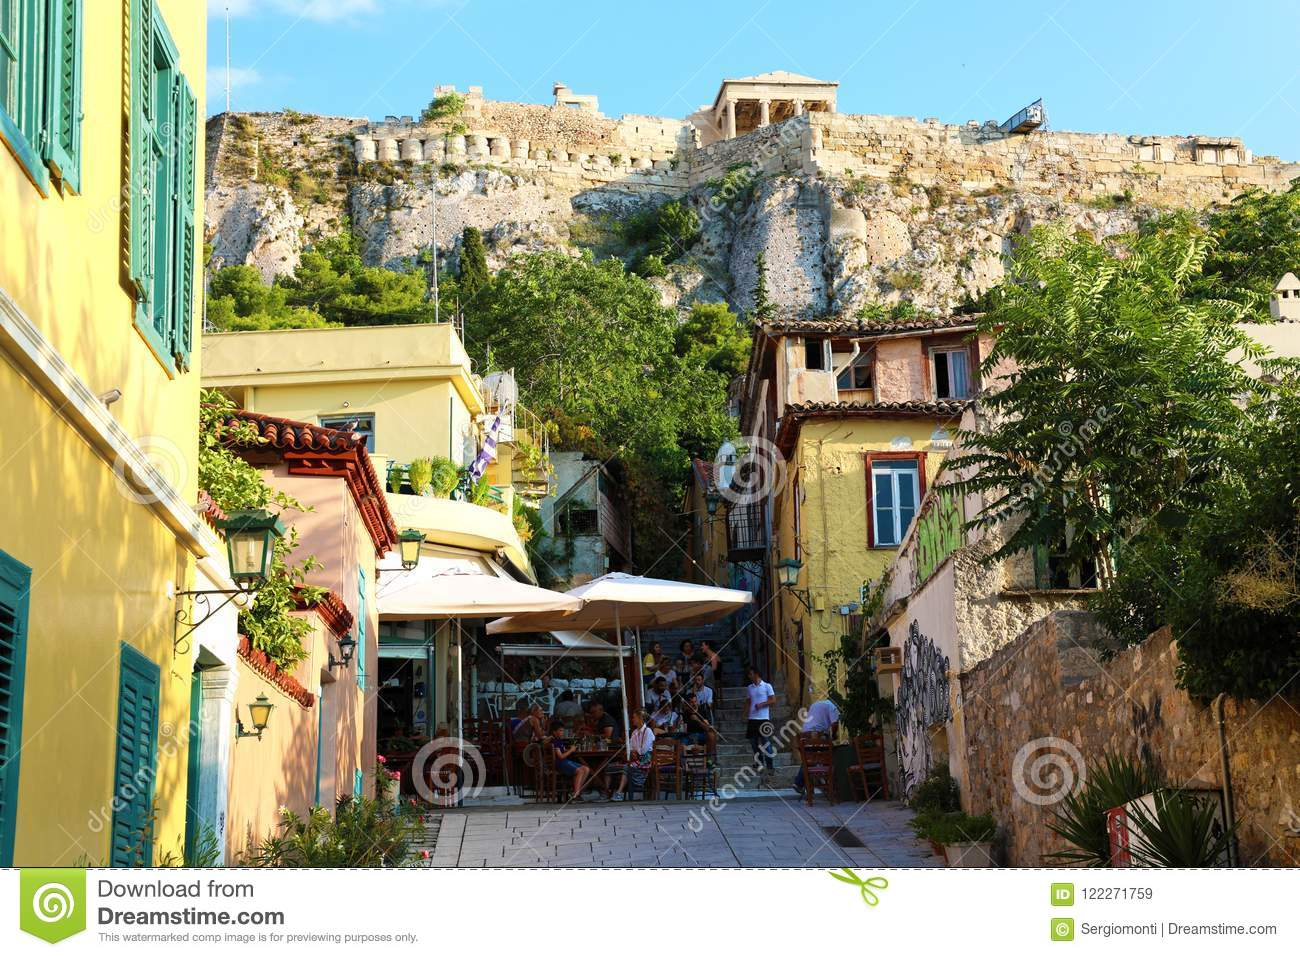 ATHENS, GREECE - JULY 18, 2018: cozy greek street with monuments and temples, Athens, Greece